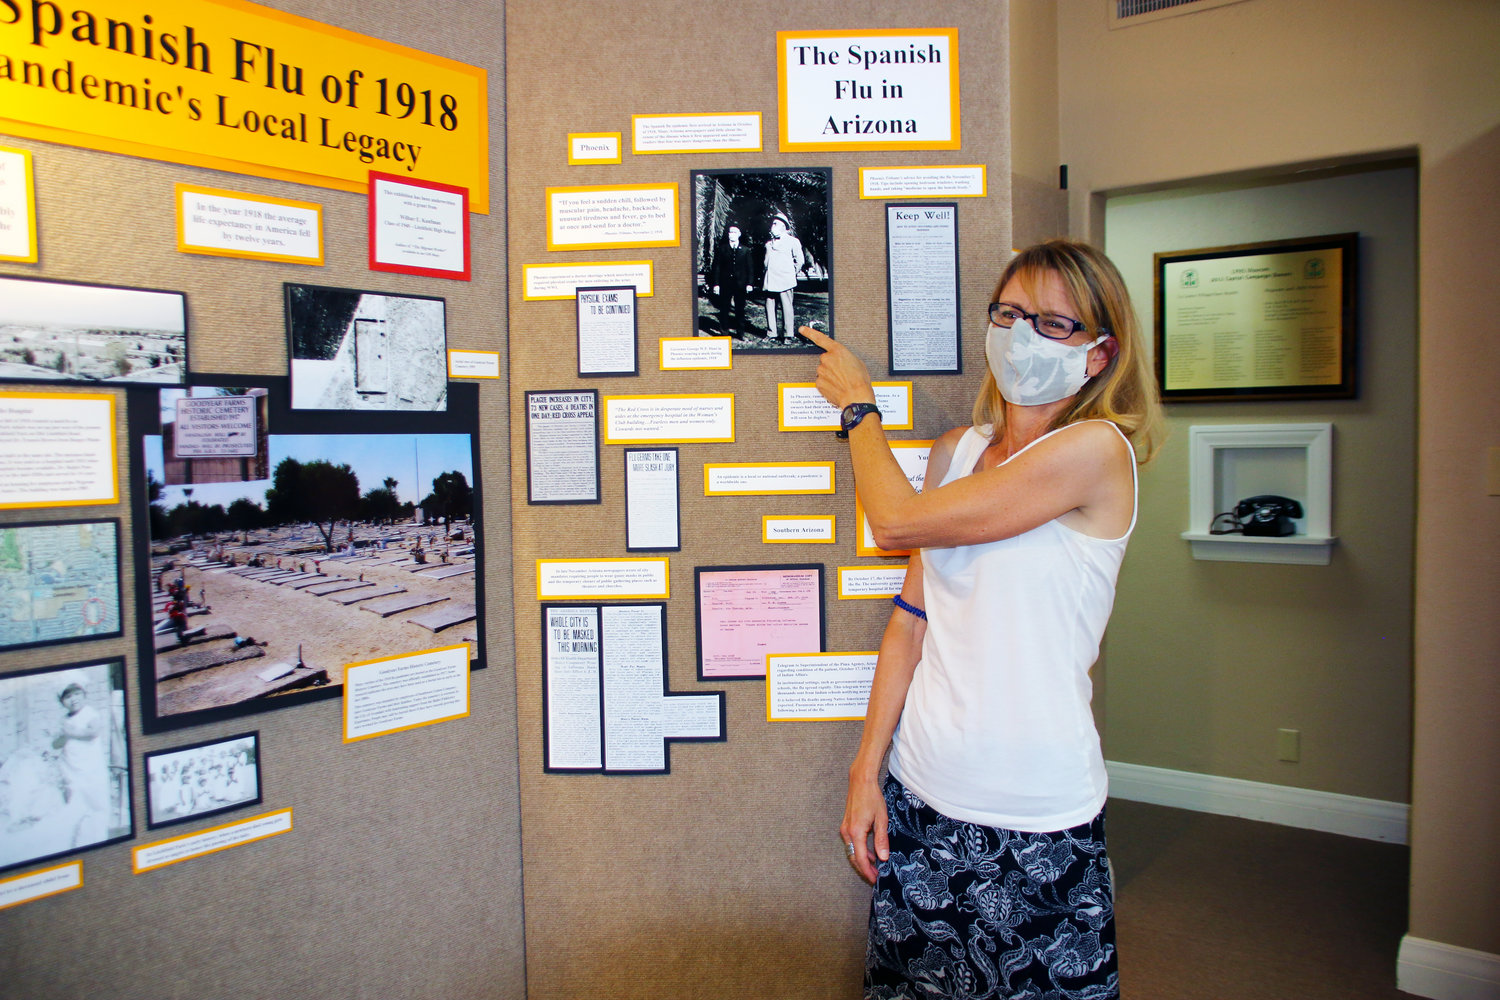 Lisa Hegarty, who curated the Spanish flu pandemic exhibit at the Litchfield Park Historical Society Museum, points to a photo of Arizona Gov. George W.P. Hunt and another man wearing face masks during a 1918 outing in Phoenix.